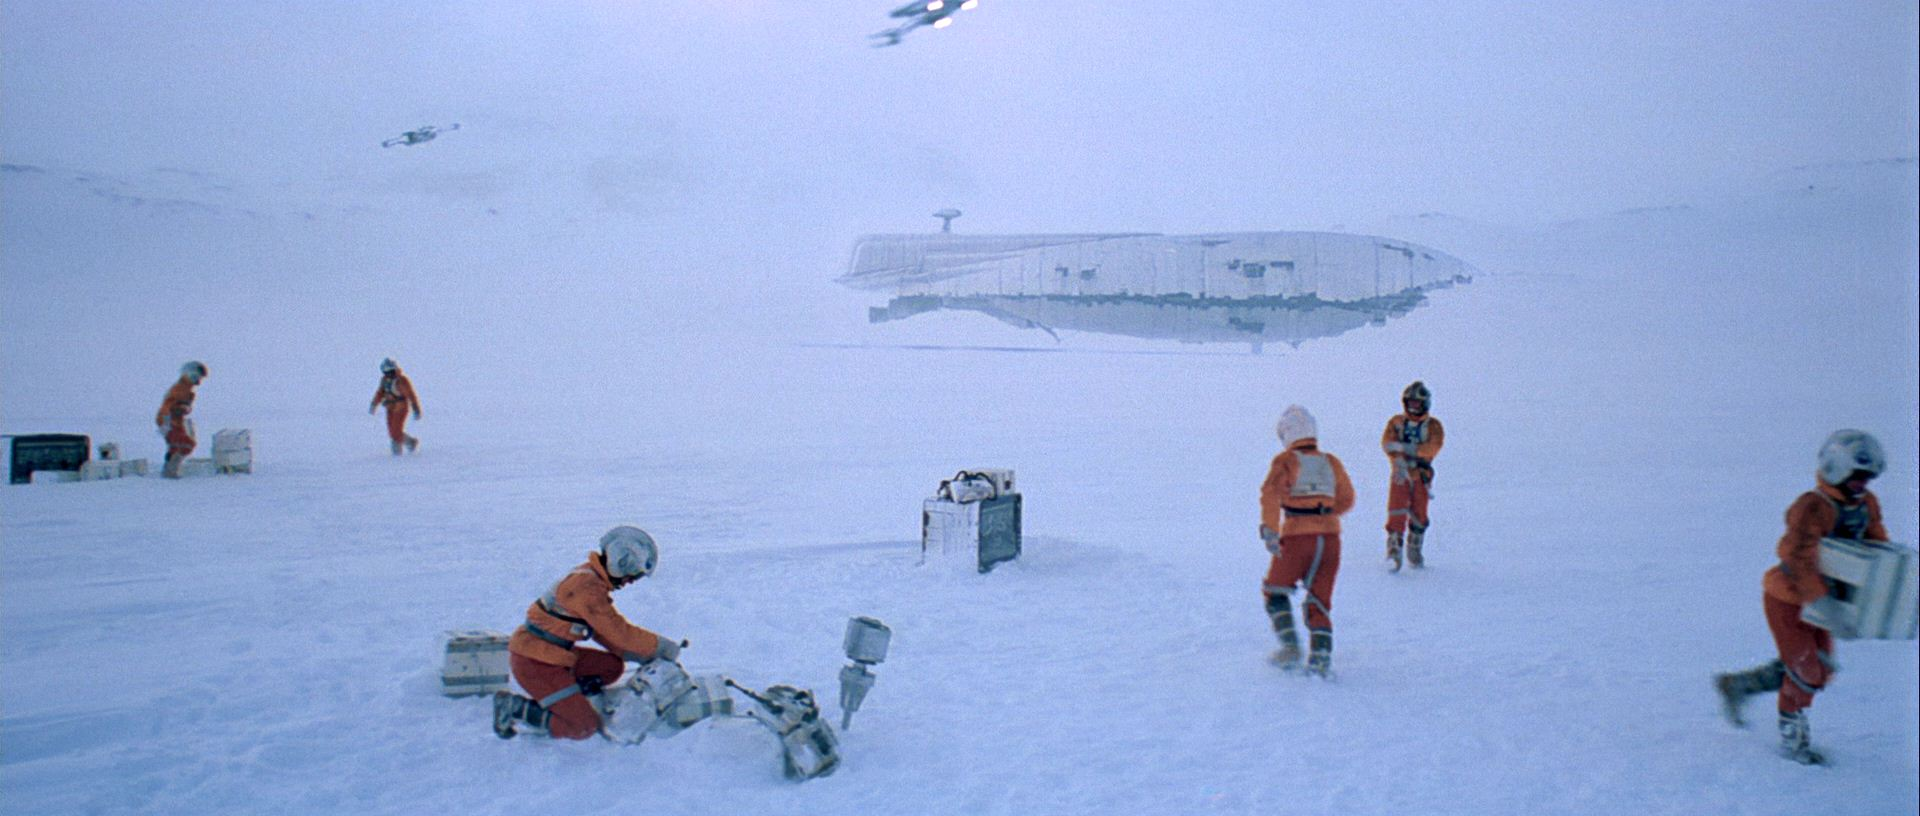 Star Wars Battlefront_Hoth Comparison_2